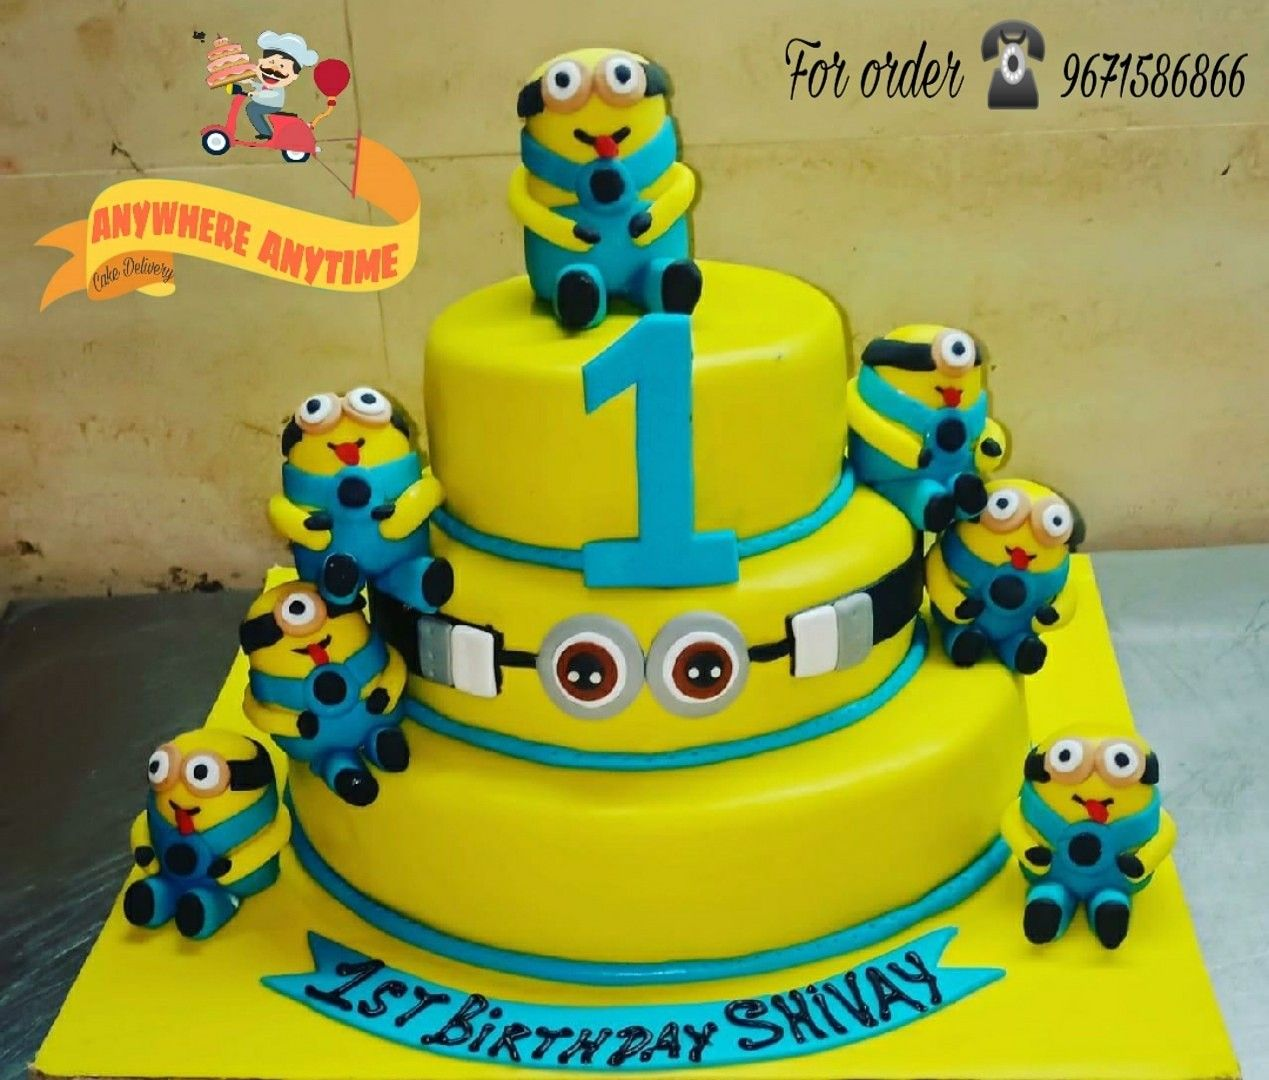 Special Birthday Cake For Kids Available In Multiple Flavours Order Us 09671586866 Celebrate Kidsjoy